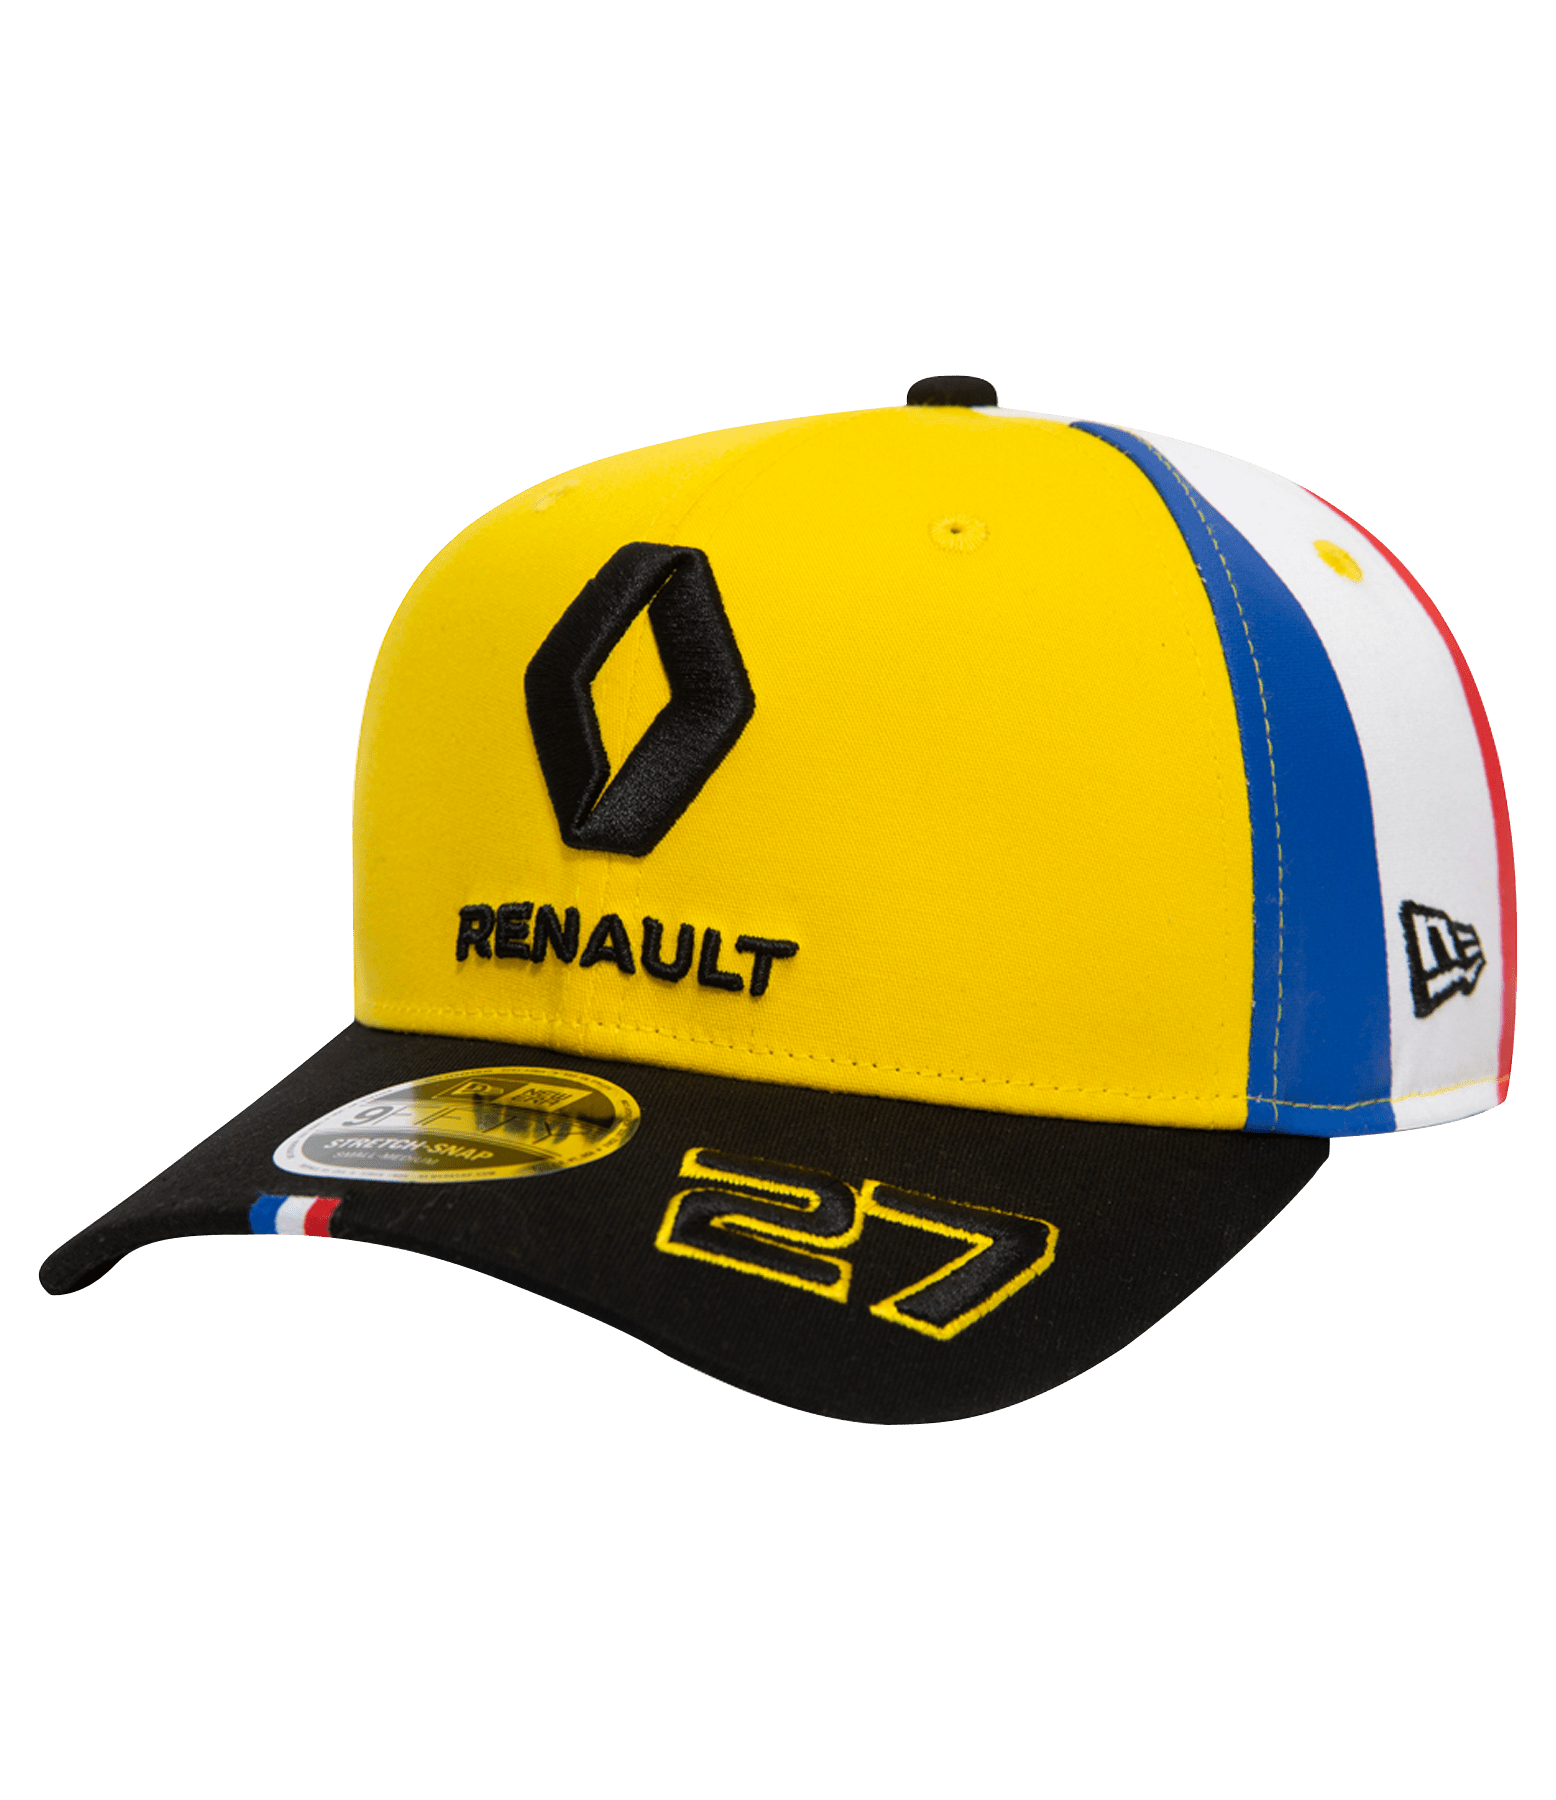 Nico Hülkenberg 2019 official cap - French GP special edition